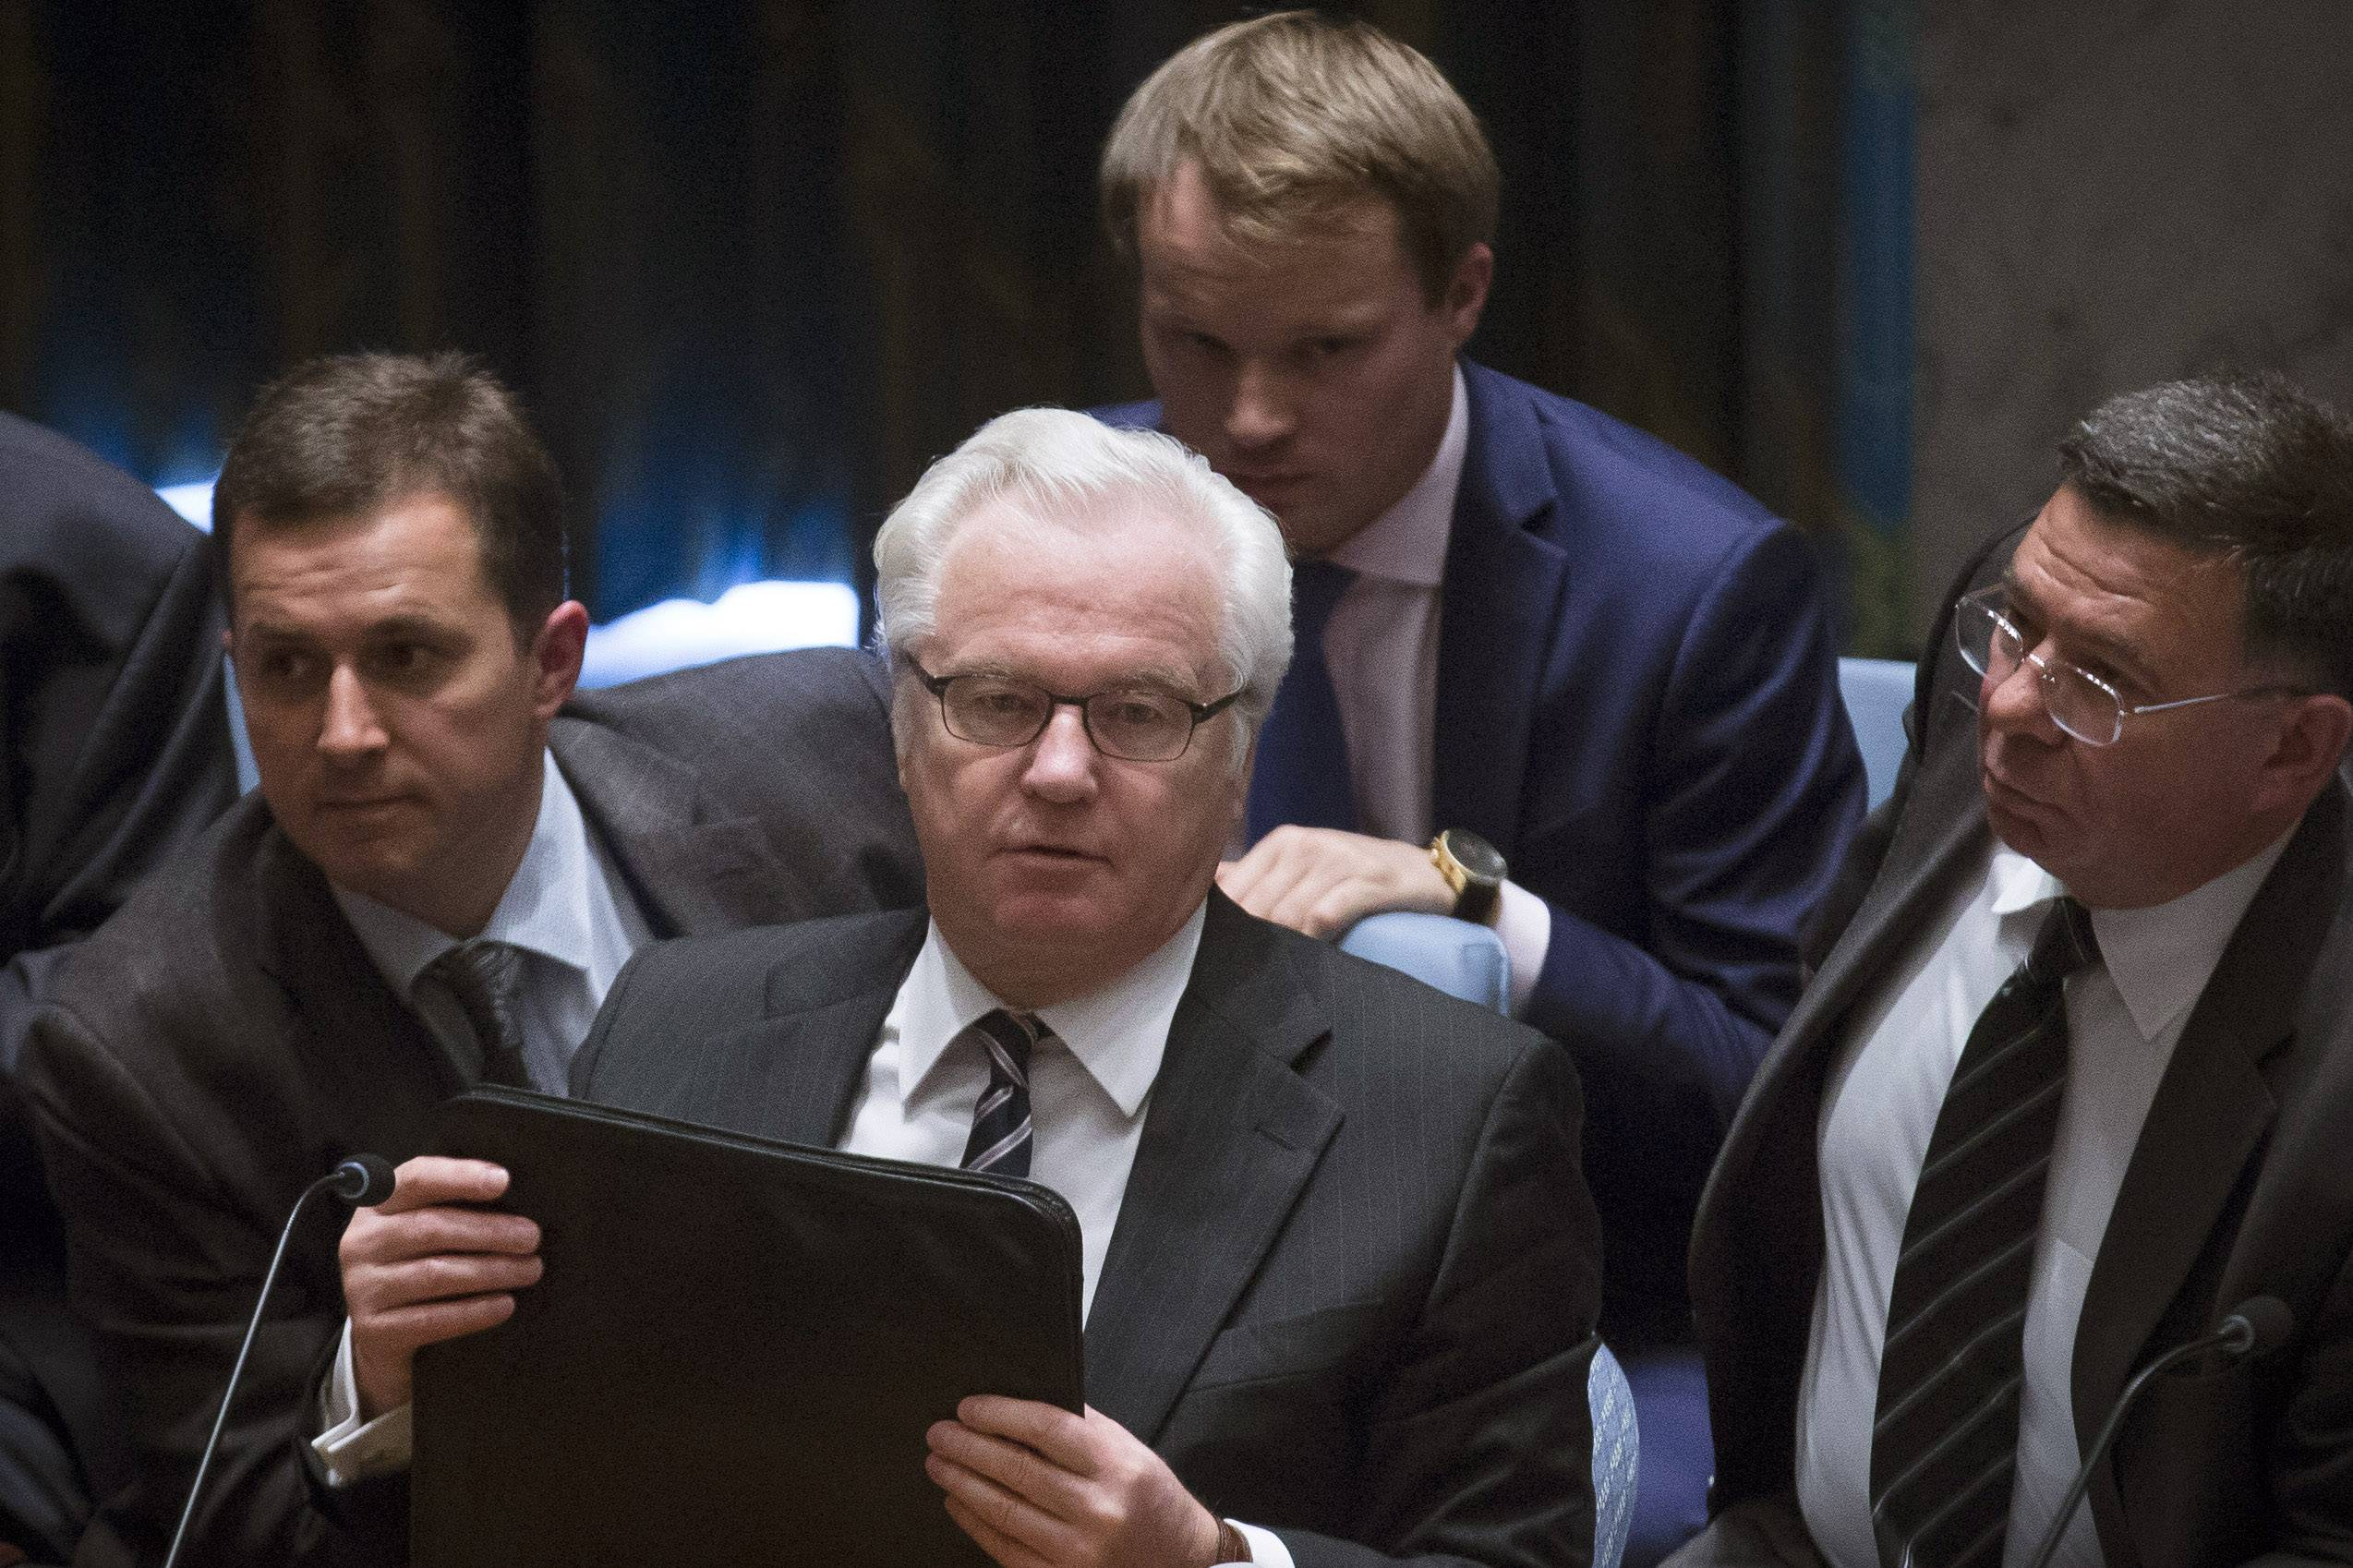 Russian U.N. Ambassador Vitaly Churkin, center, prepares to leave following a U.N. Security Council meeting at United Nations headquarters Friday. Britain's U.N. Mission says it requested an emergency meeting after Thursday's downing of a Malaysia Airlines plane carrying 298 people over eastern Ukraine.